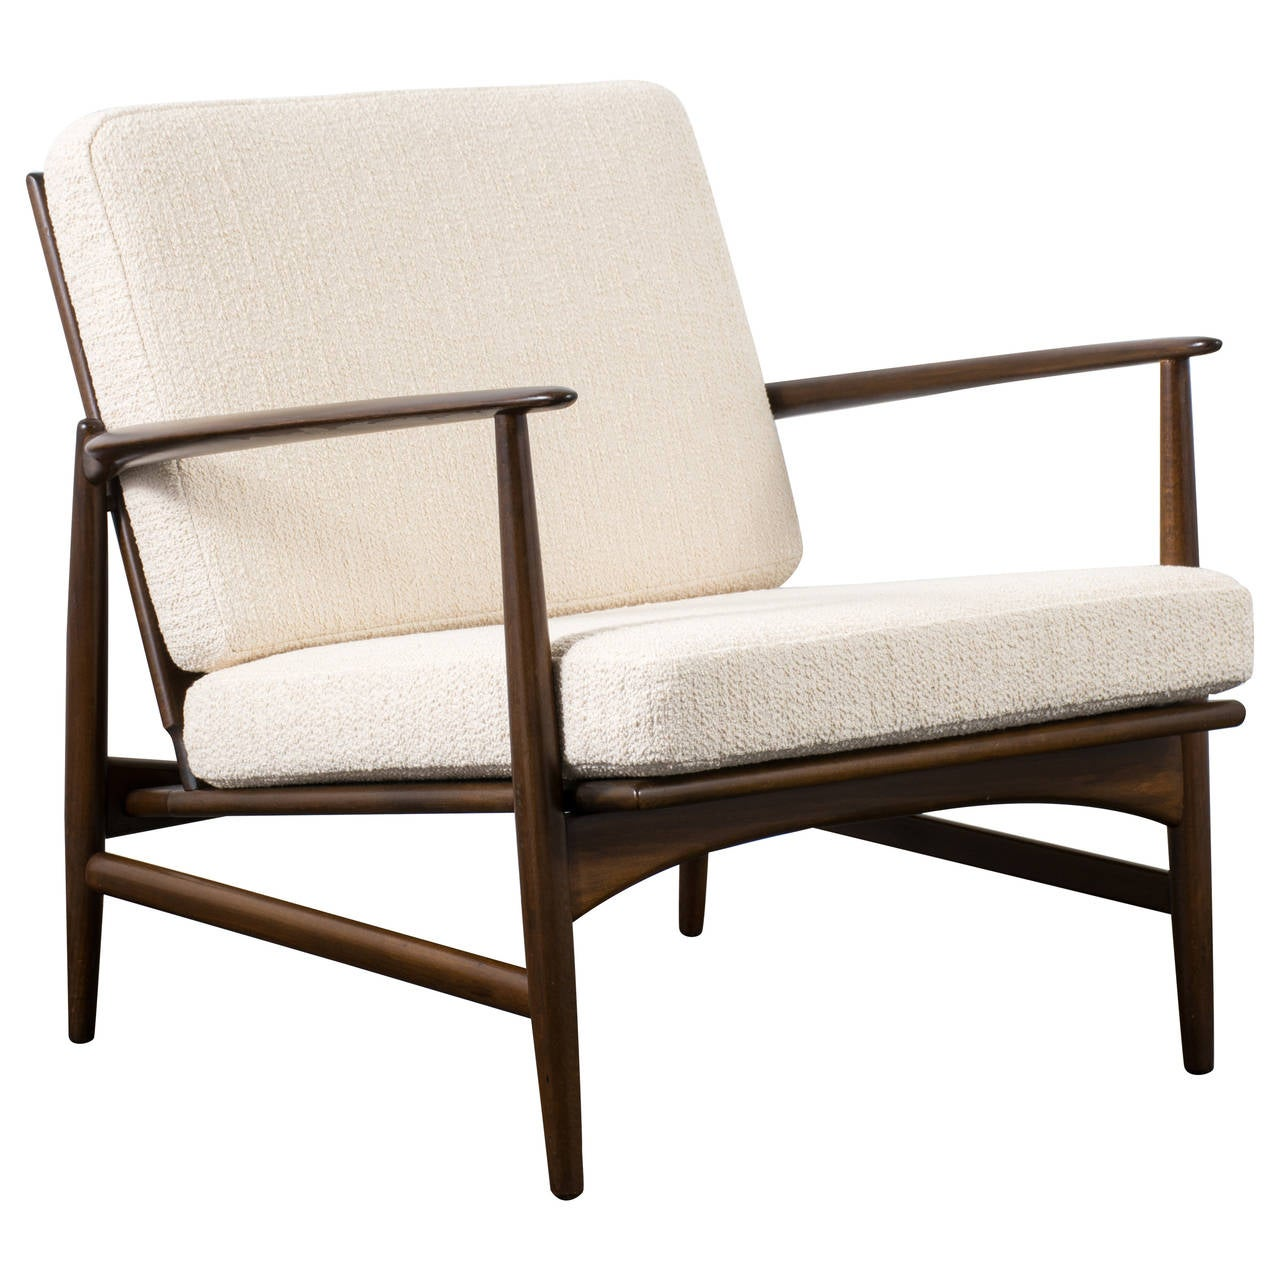 this danish modern lounge chair by kofod larsen for selig is no longer